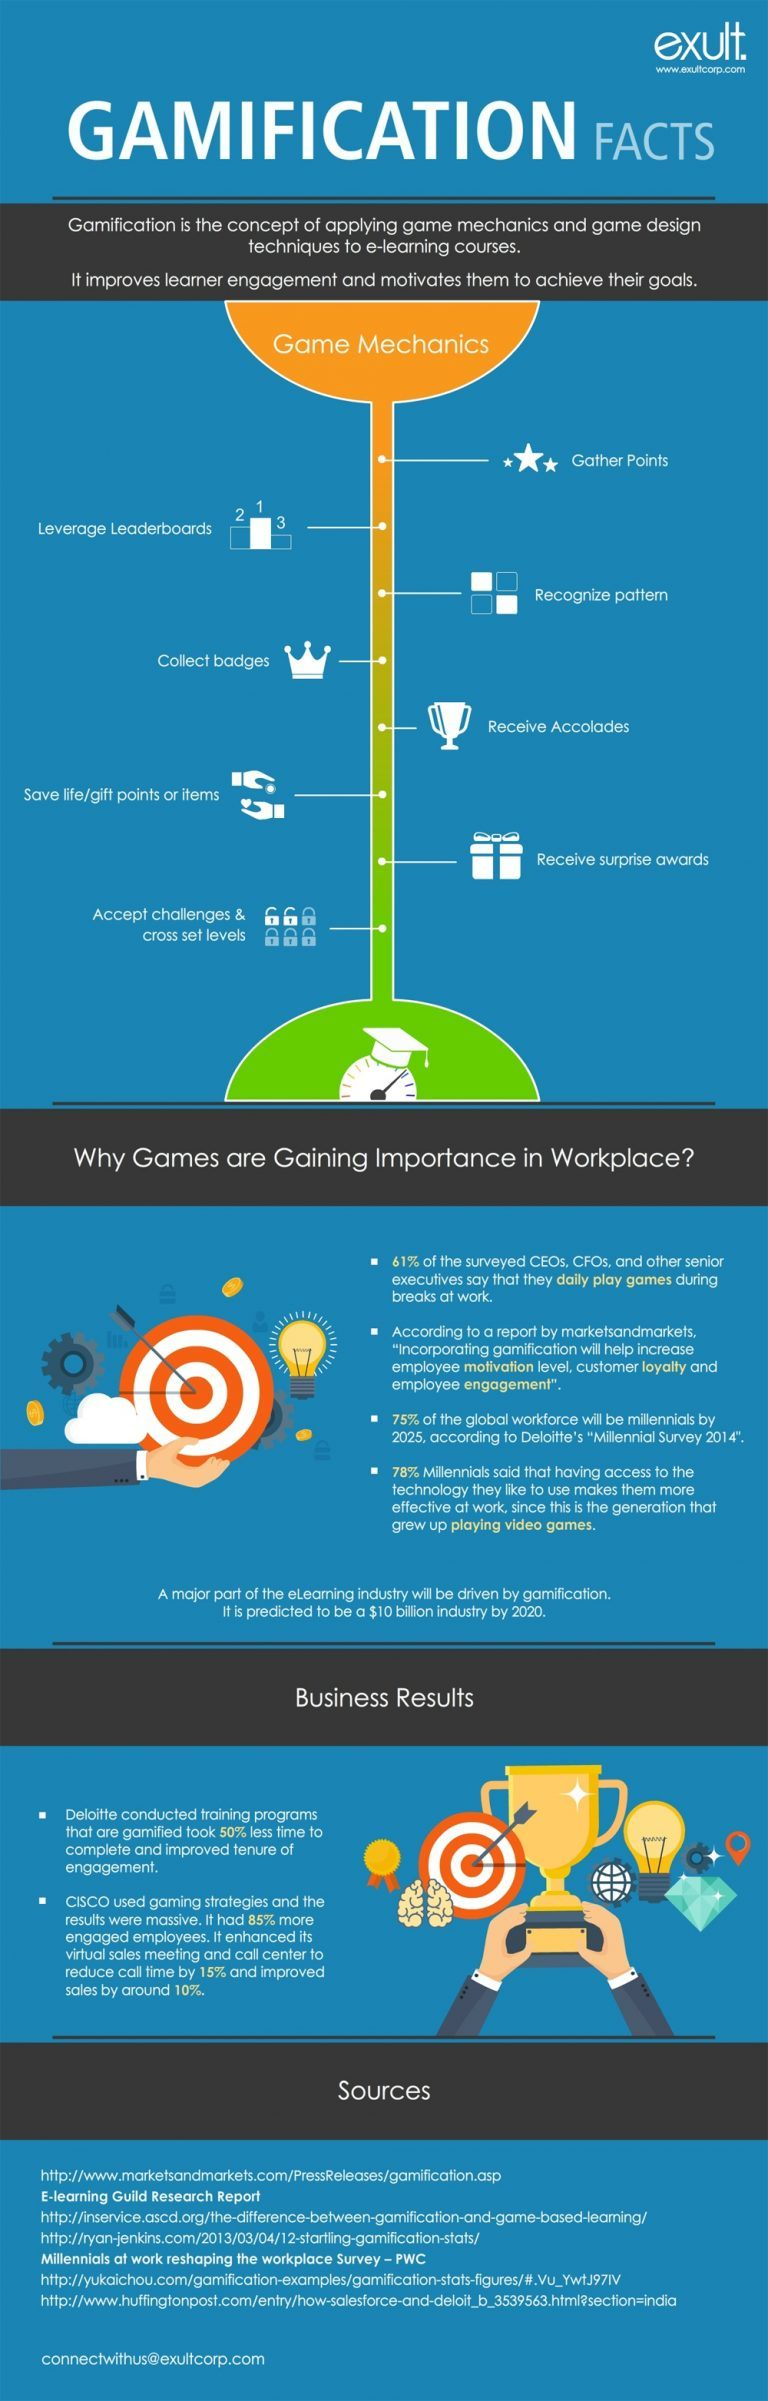 the concept of gamification and the gaming enterprise Gamification is the application of game-design elements and game principles in non-game contexts gamification commonly employs game design elements to improve user engagement.